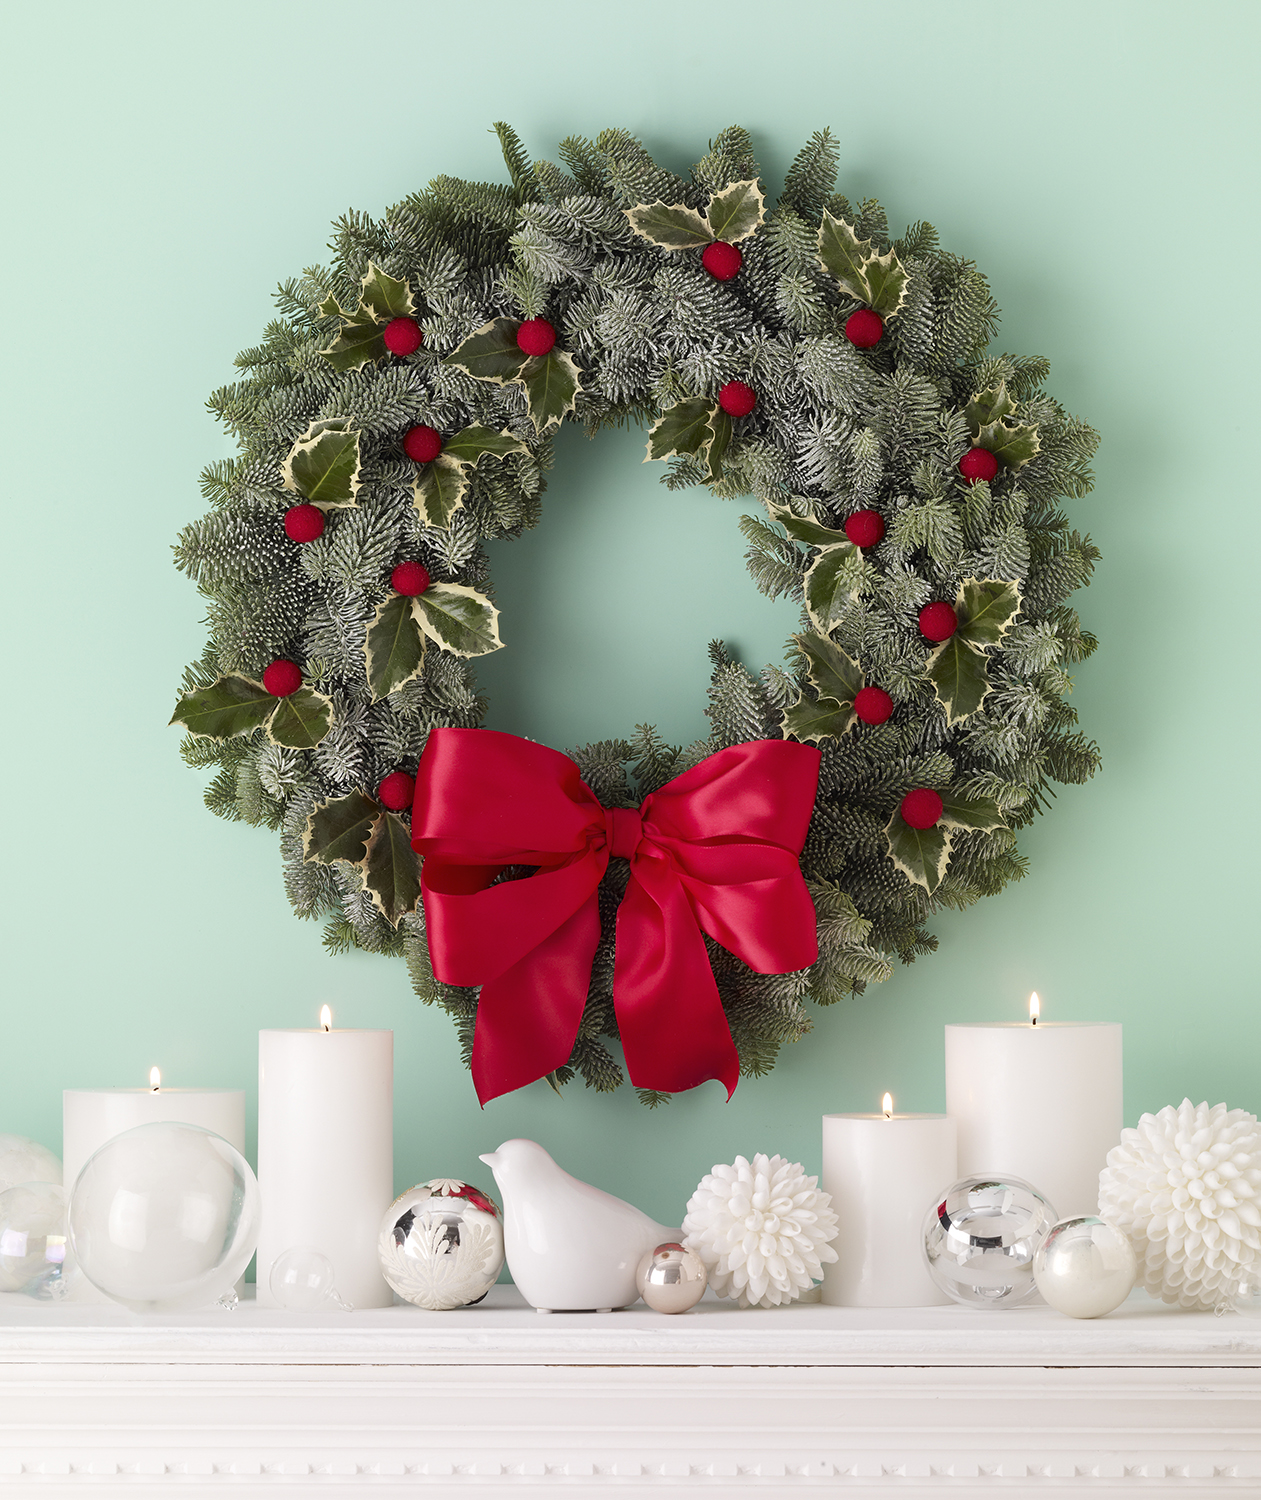 Holiday wreath over mantel